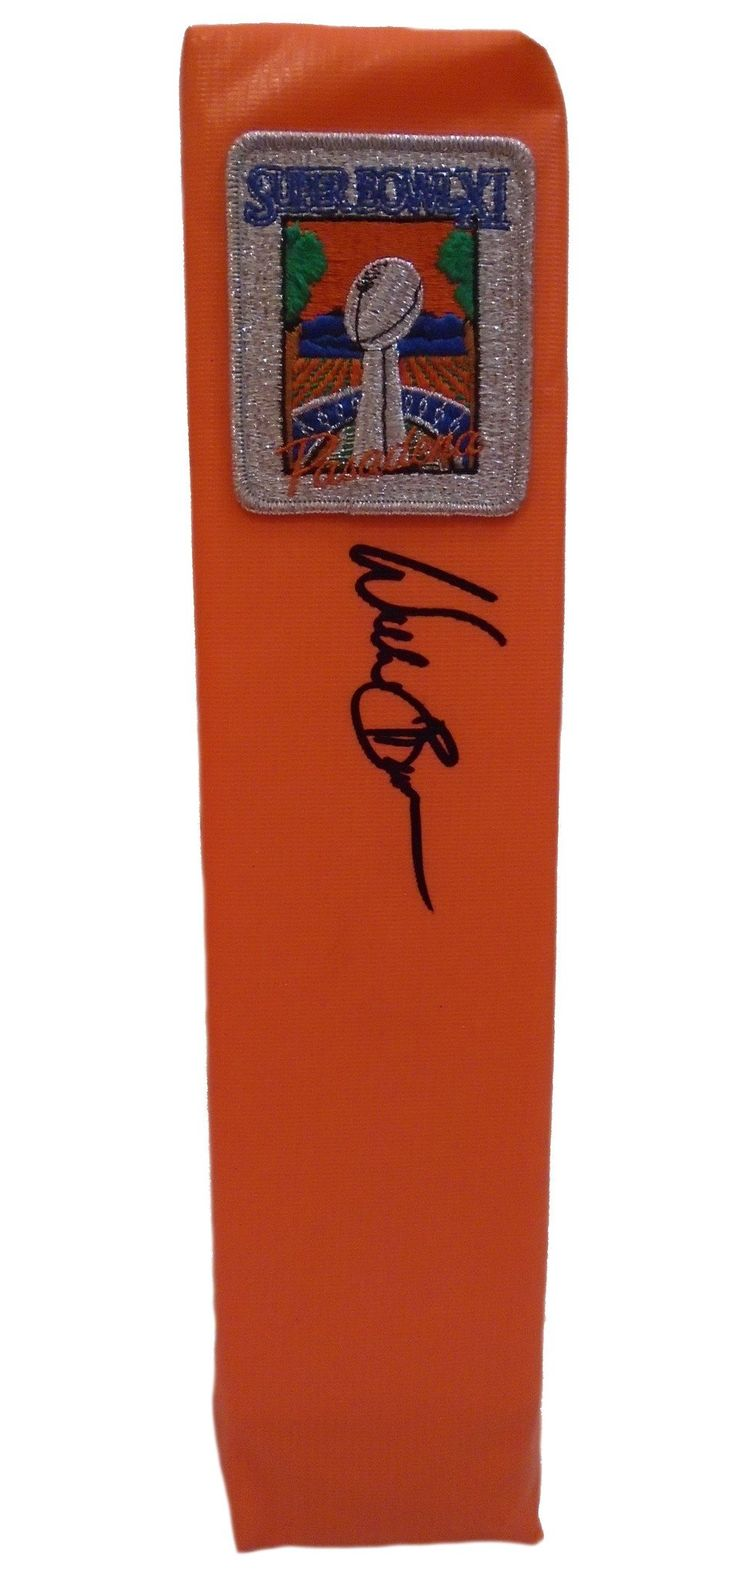 Willie Brown Autographed SB XI Full Size Football End Zone Touchdown Pylon, Proof Photo. This is a brand-new custom Willie Brown signed Oakland Raiders Super Bowl XI full size football end zone pylon.  This pylon measures 4 inches (Width)  X 4 inches (Length) X 18 inches (Height).  Willie signed the pylon in black sharpie. Check out the photo of Willie signing for us. ** Proof photo is included for free with purchase. Please click on images to enlarge. Please browse our website for…